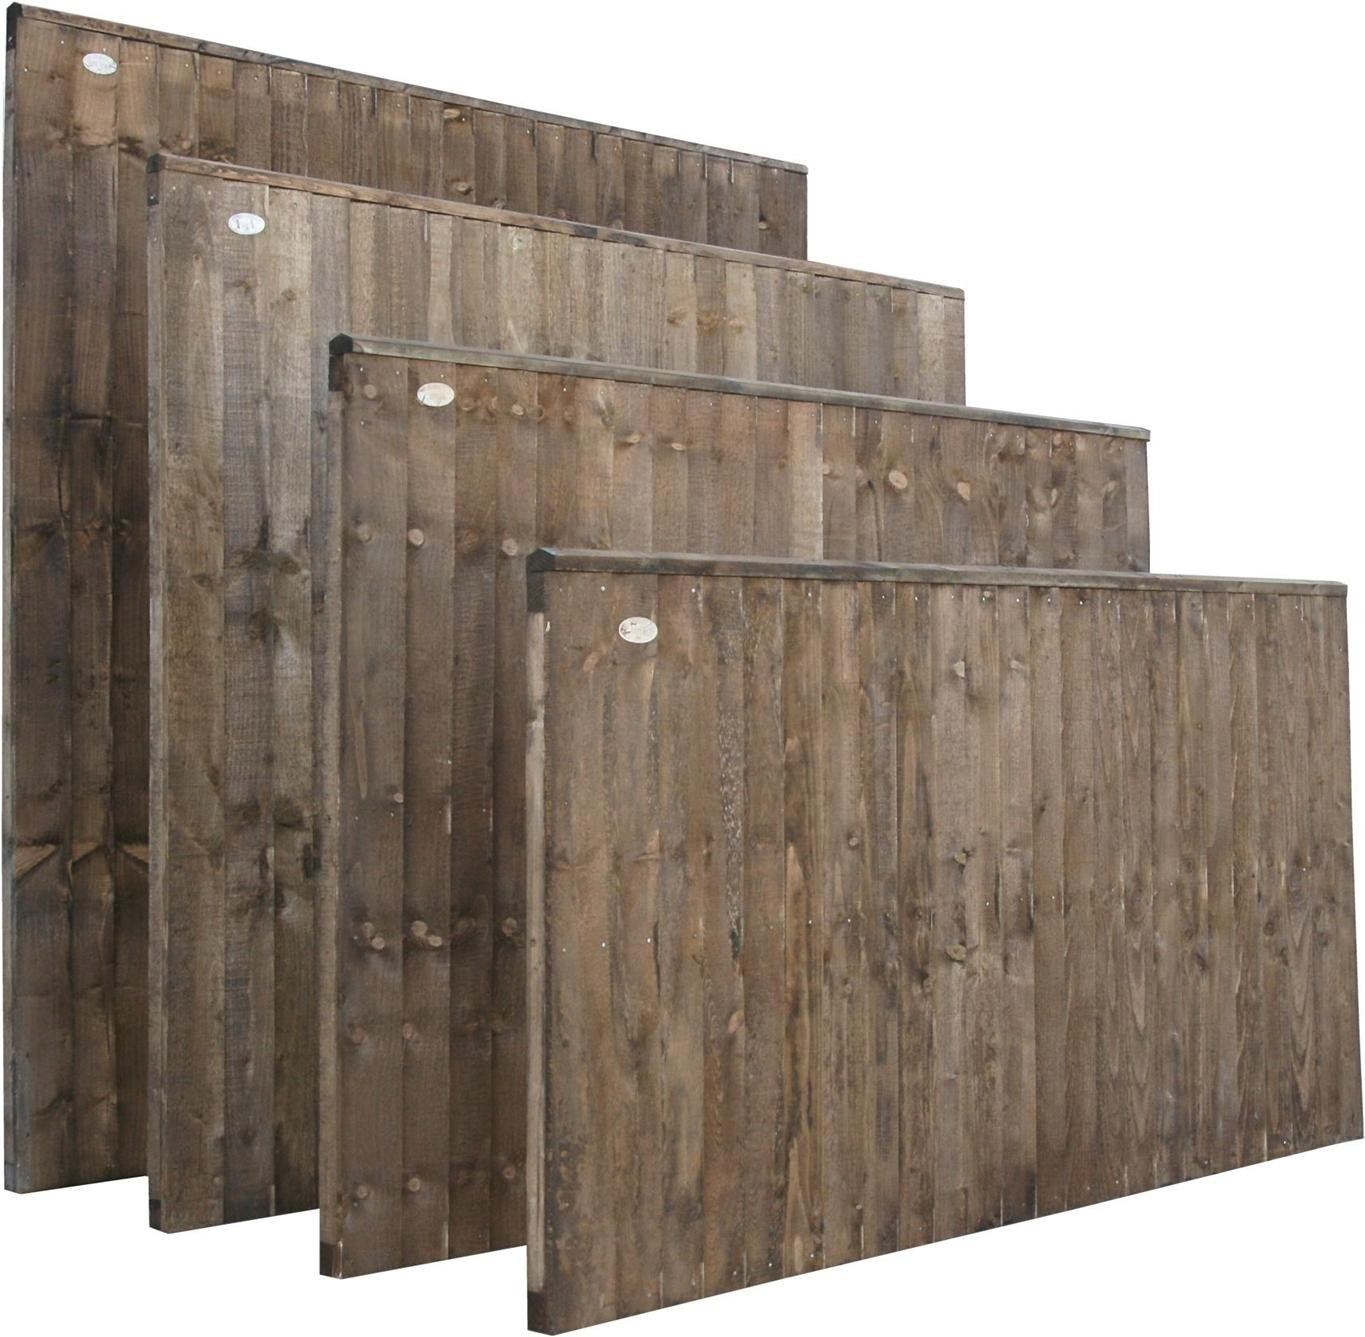 Featheredge Fence Panels 6ft X 6ft Sb Building Supplies Ltd